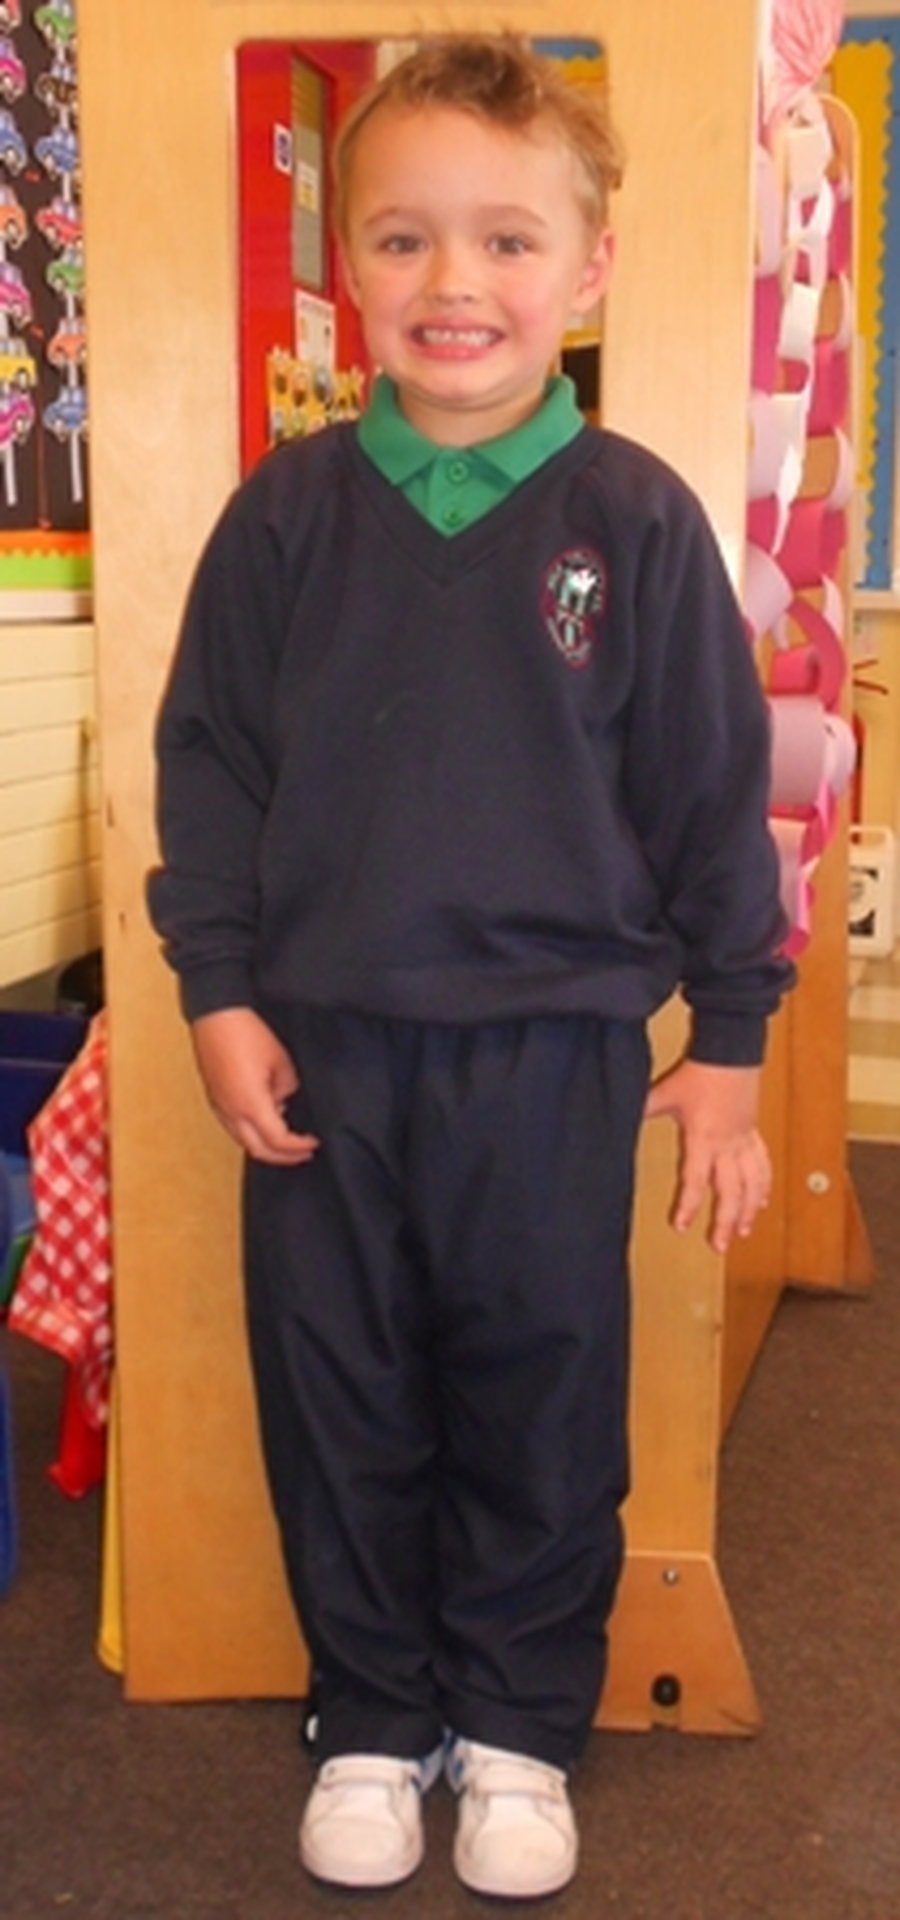 *Please Note* Pupils in the foundation stage may wear plain navy tracksuit bottoms as part of their uniform.